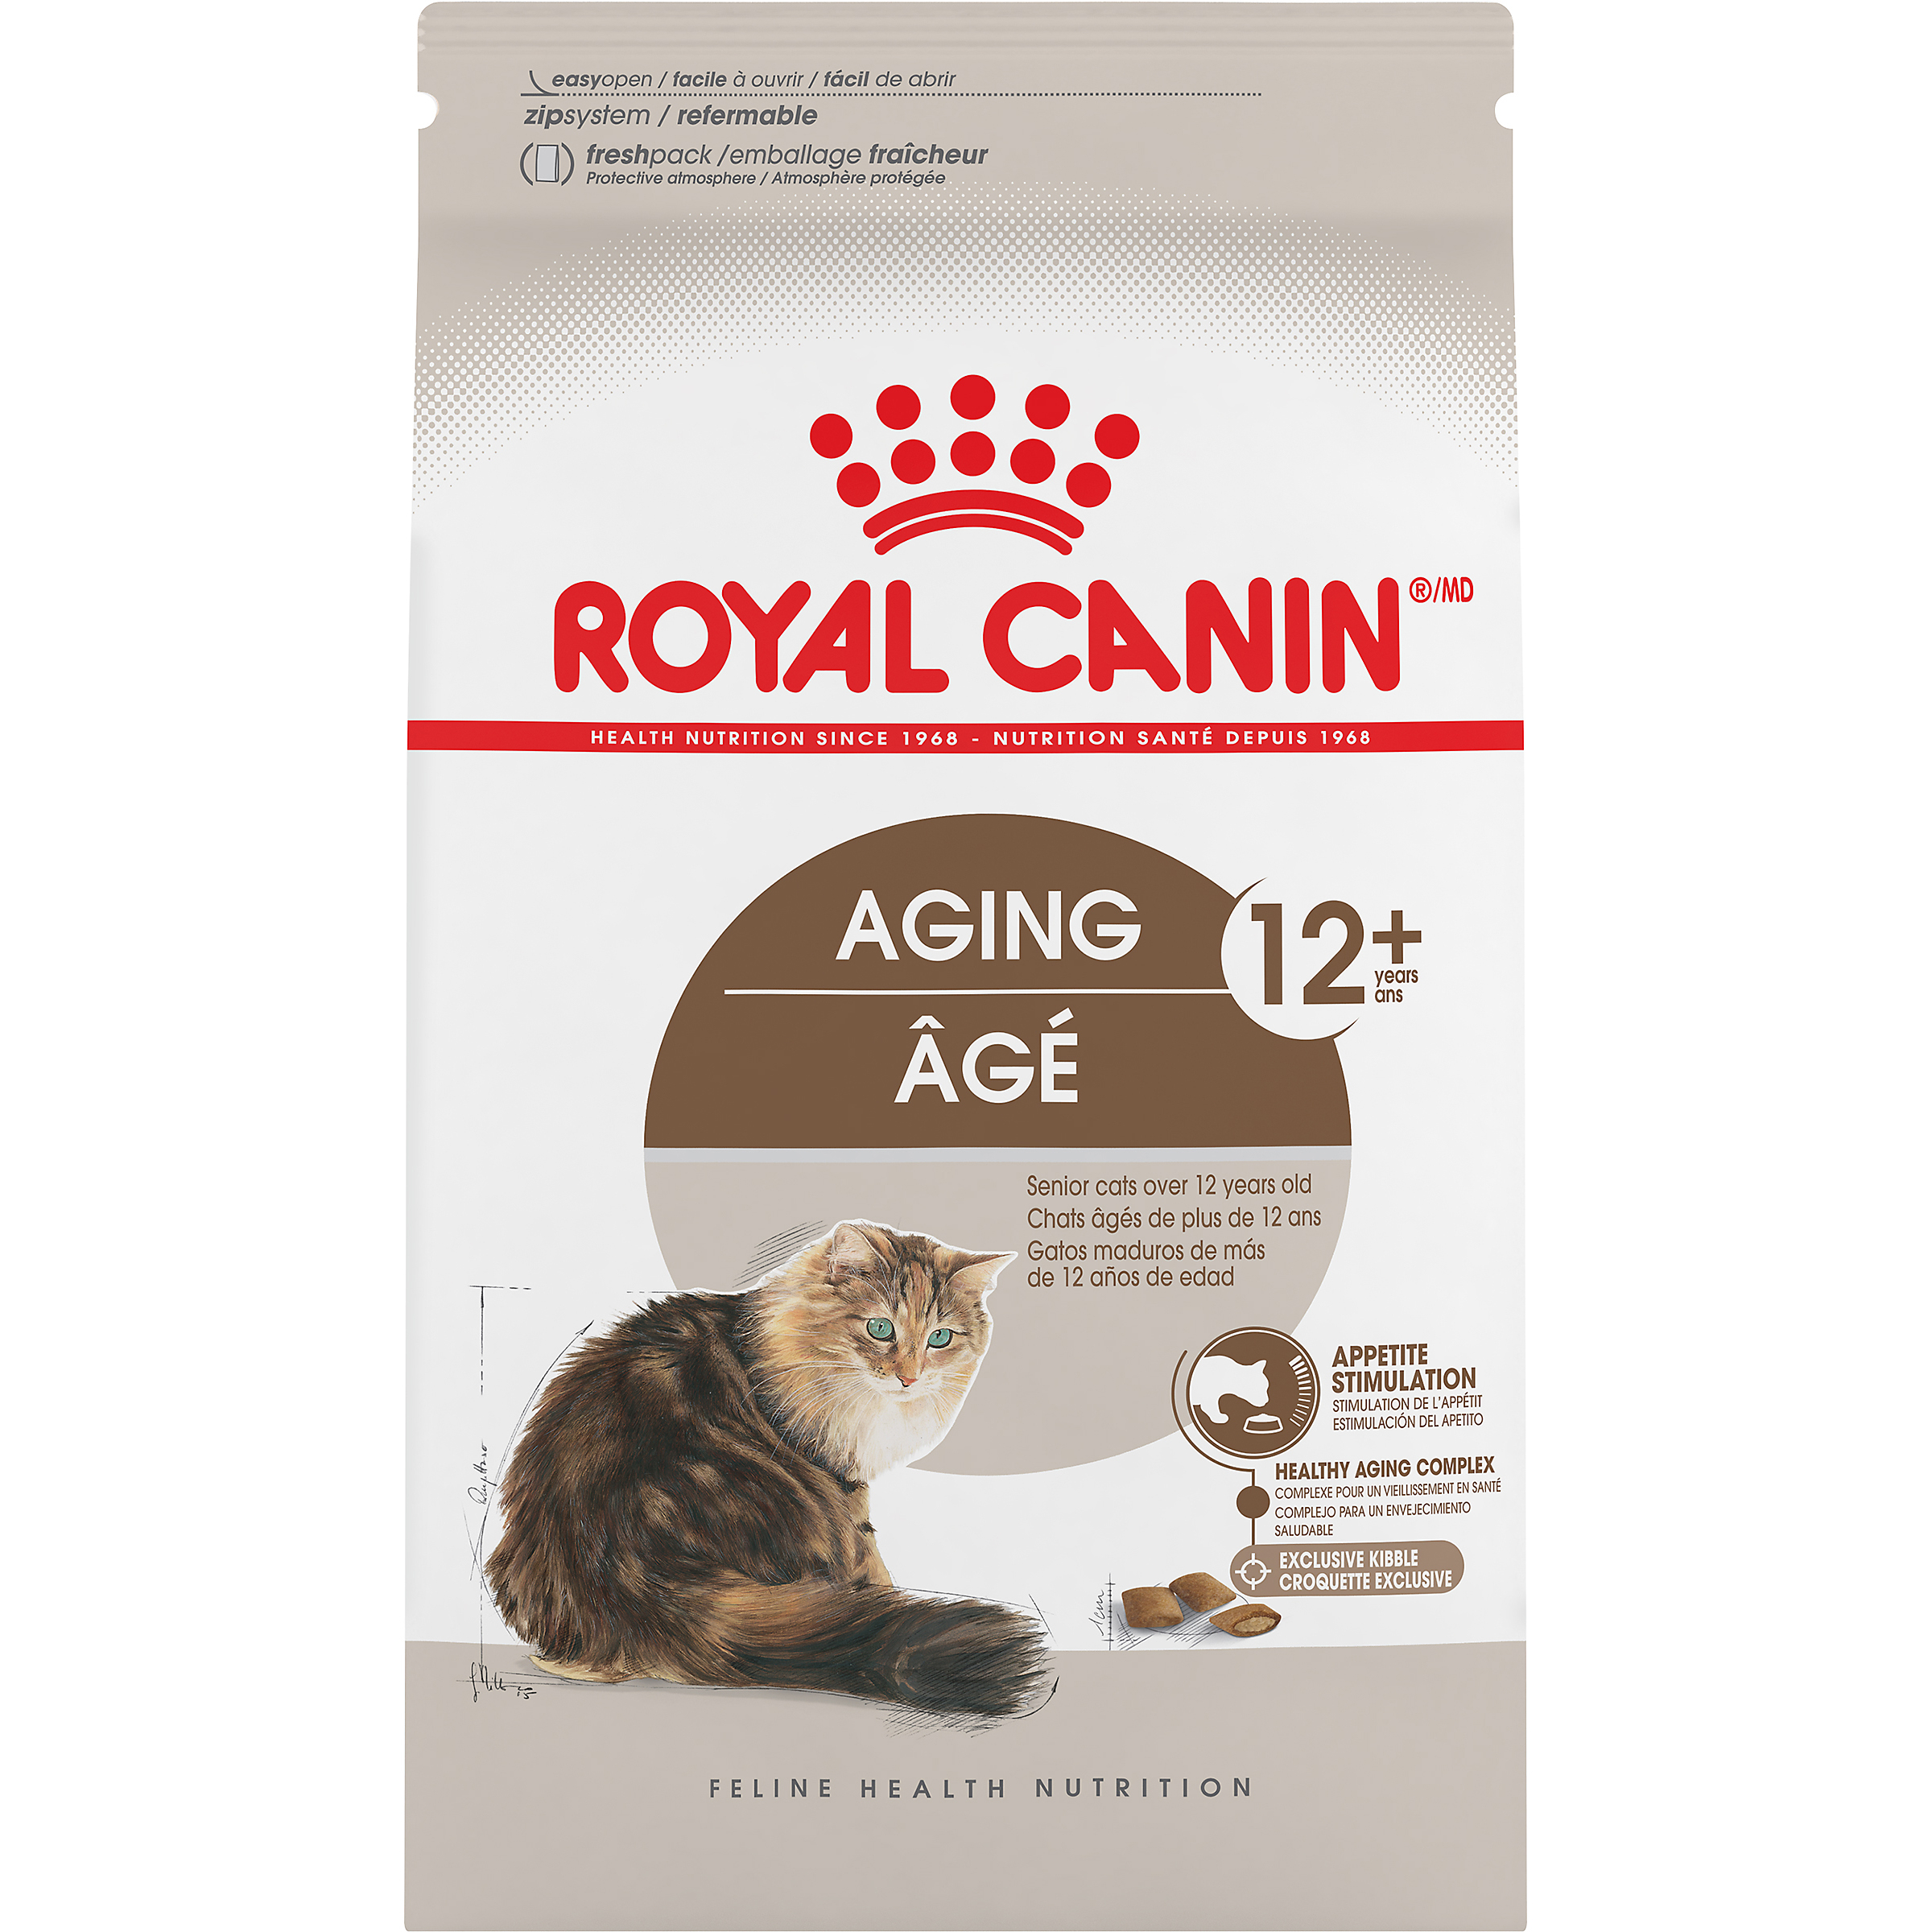 Aging 12+ Dry Adult Cat Food - Royal Canin